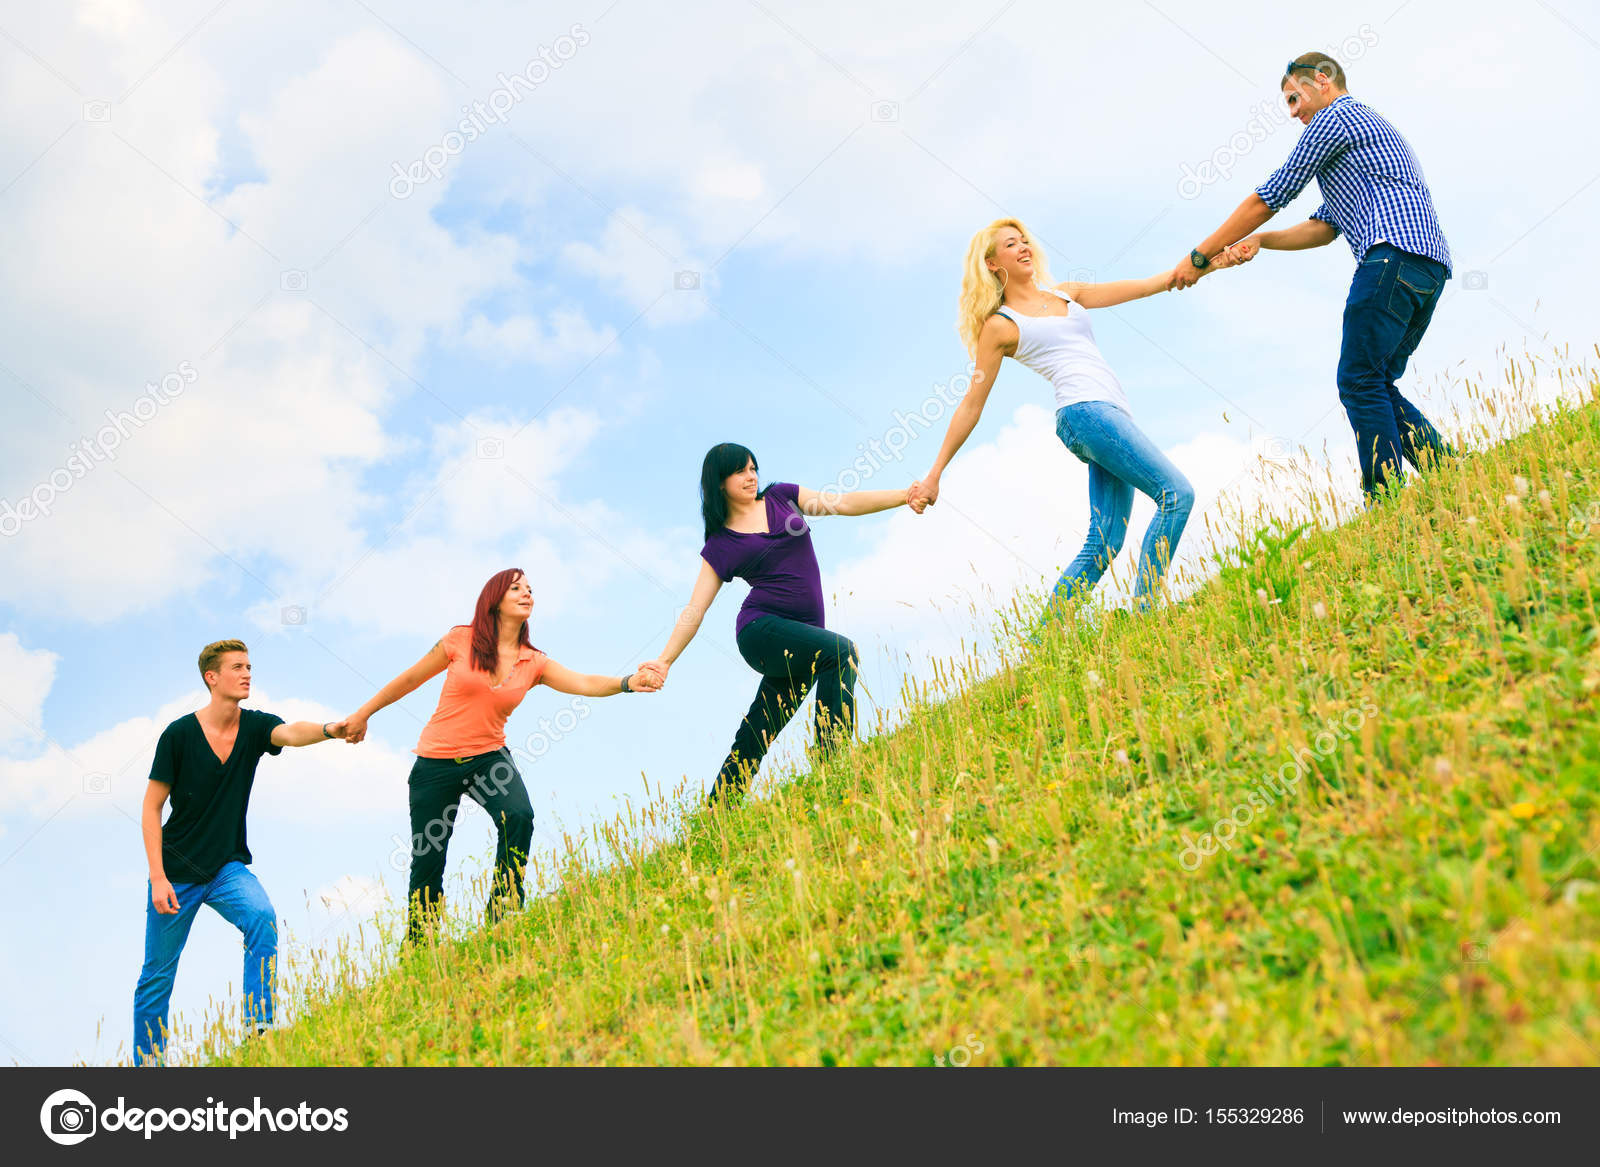 Helping Each Other: Young People Helping Each Other Climb A Hill